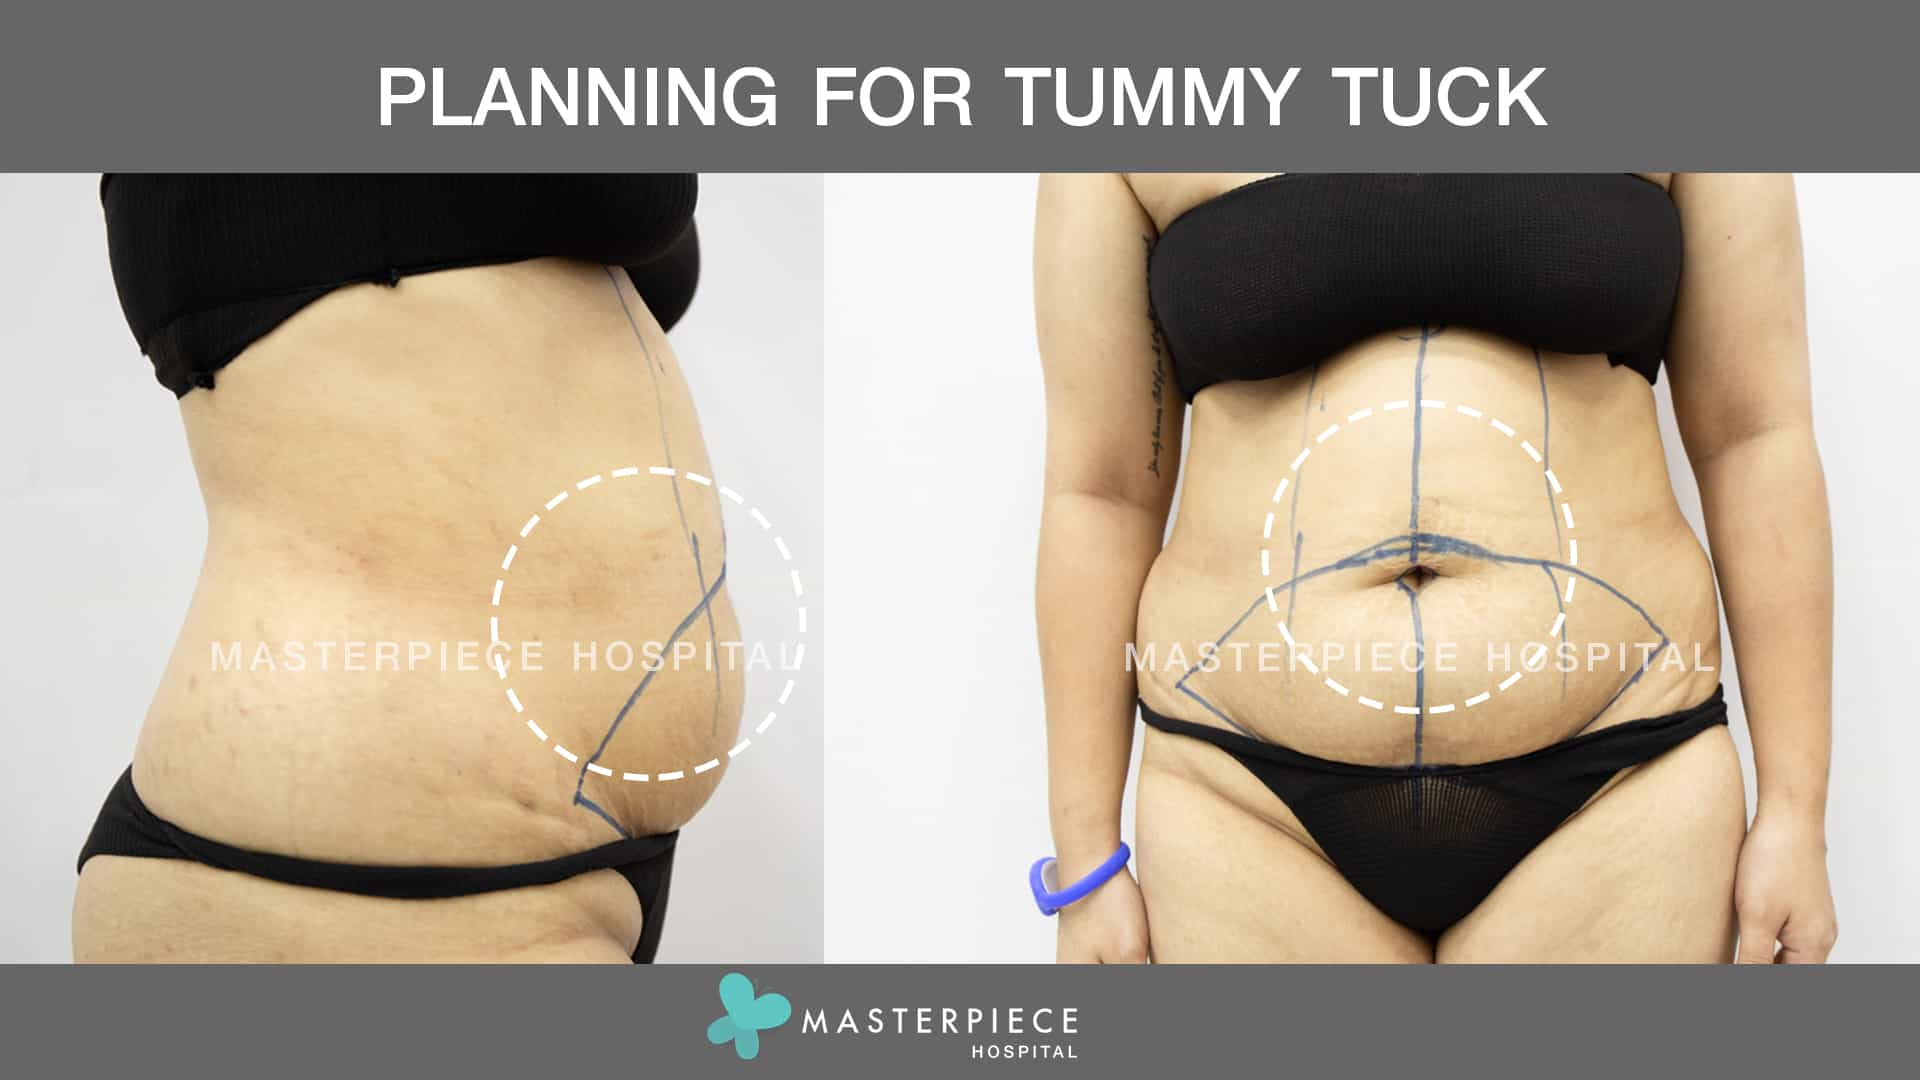 Planning for Tummy Tuck